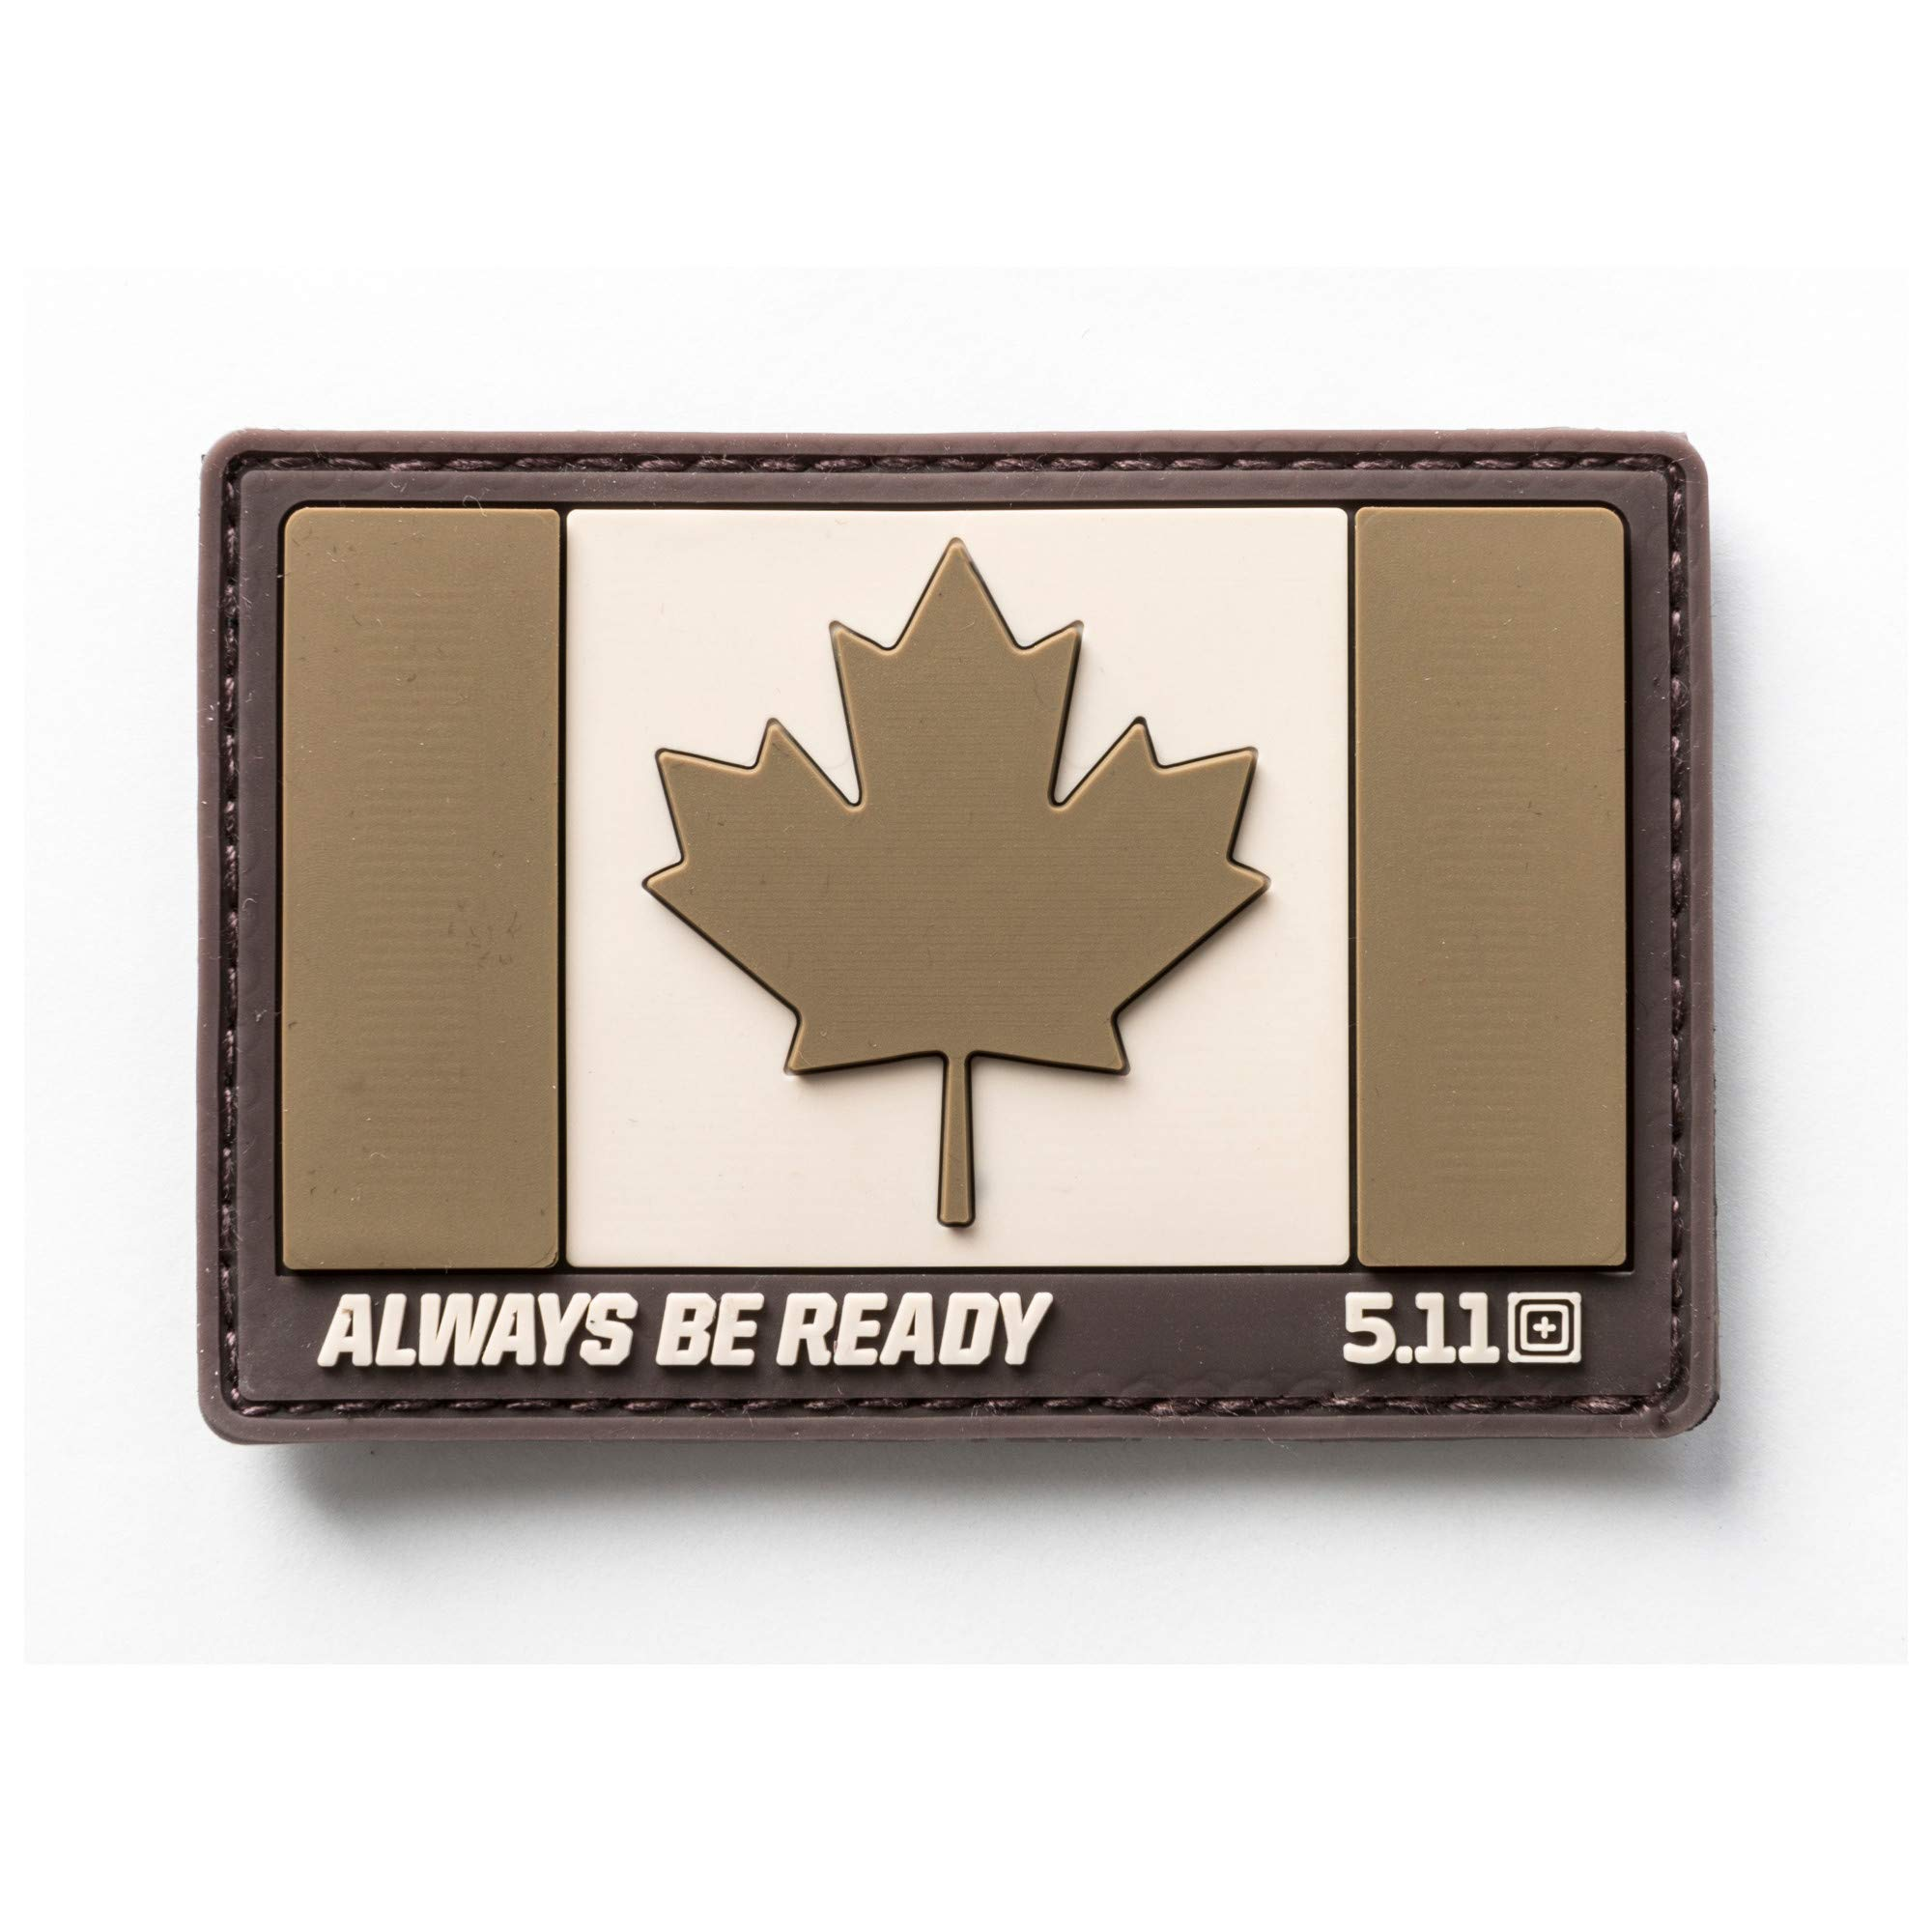 5.11 Tactical Canada Flag Patch, Hook Backing, Laser-Cut Size, Easy Attachment, Style 81209